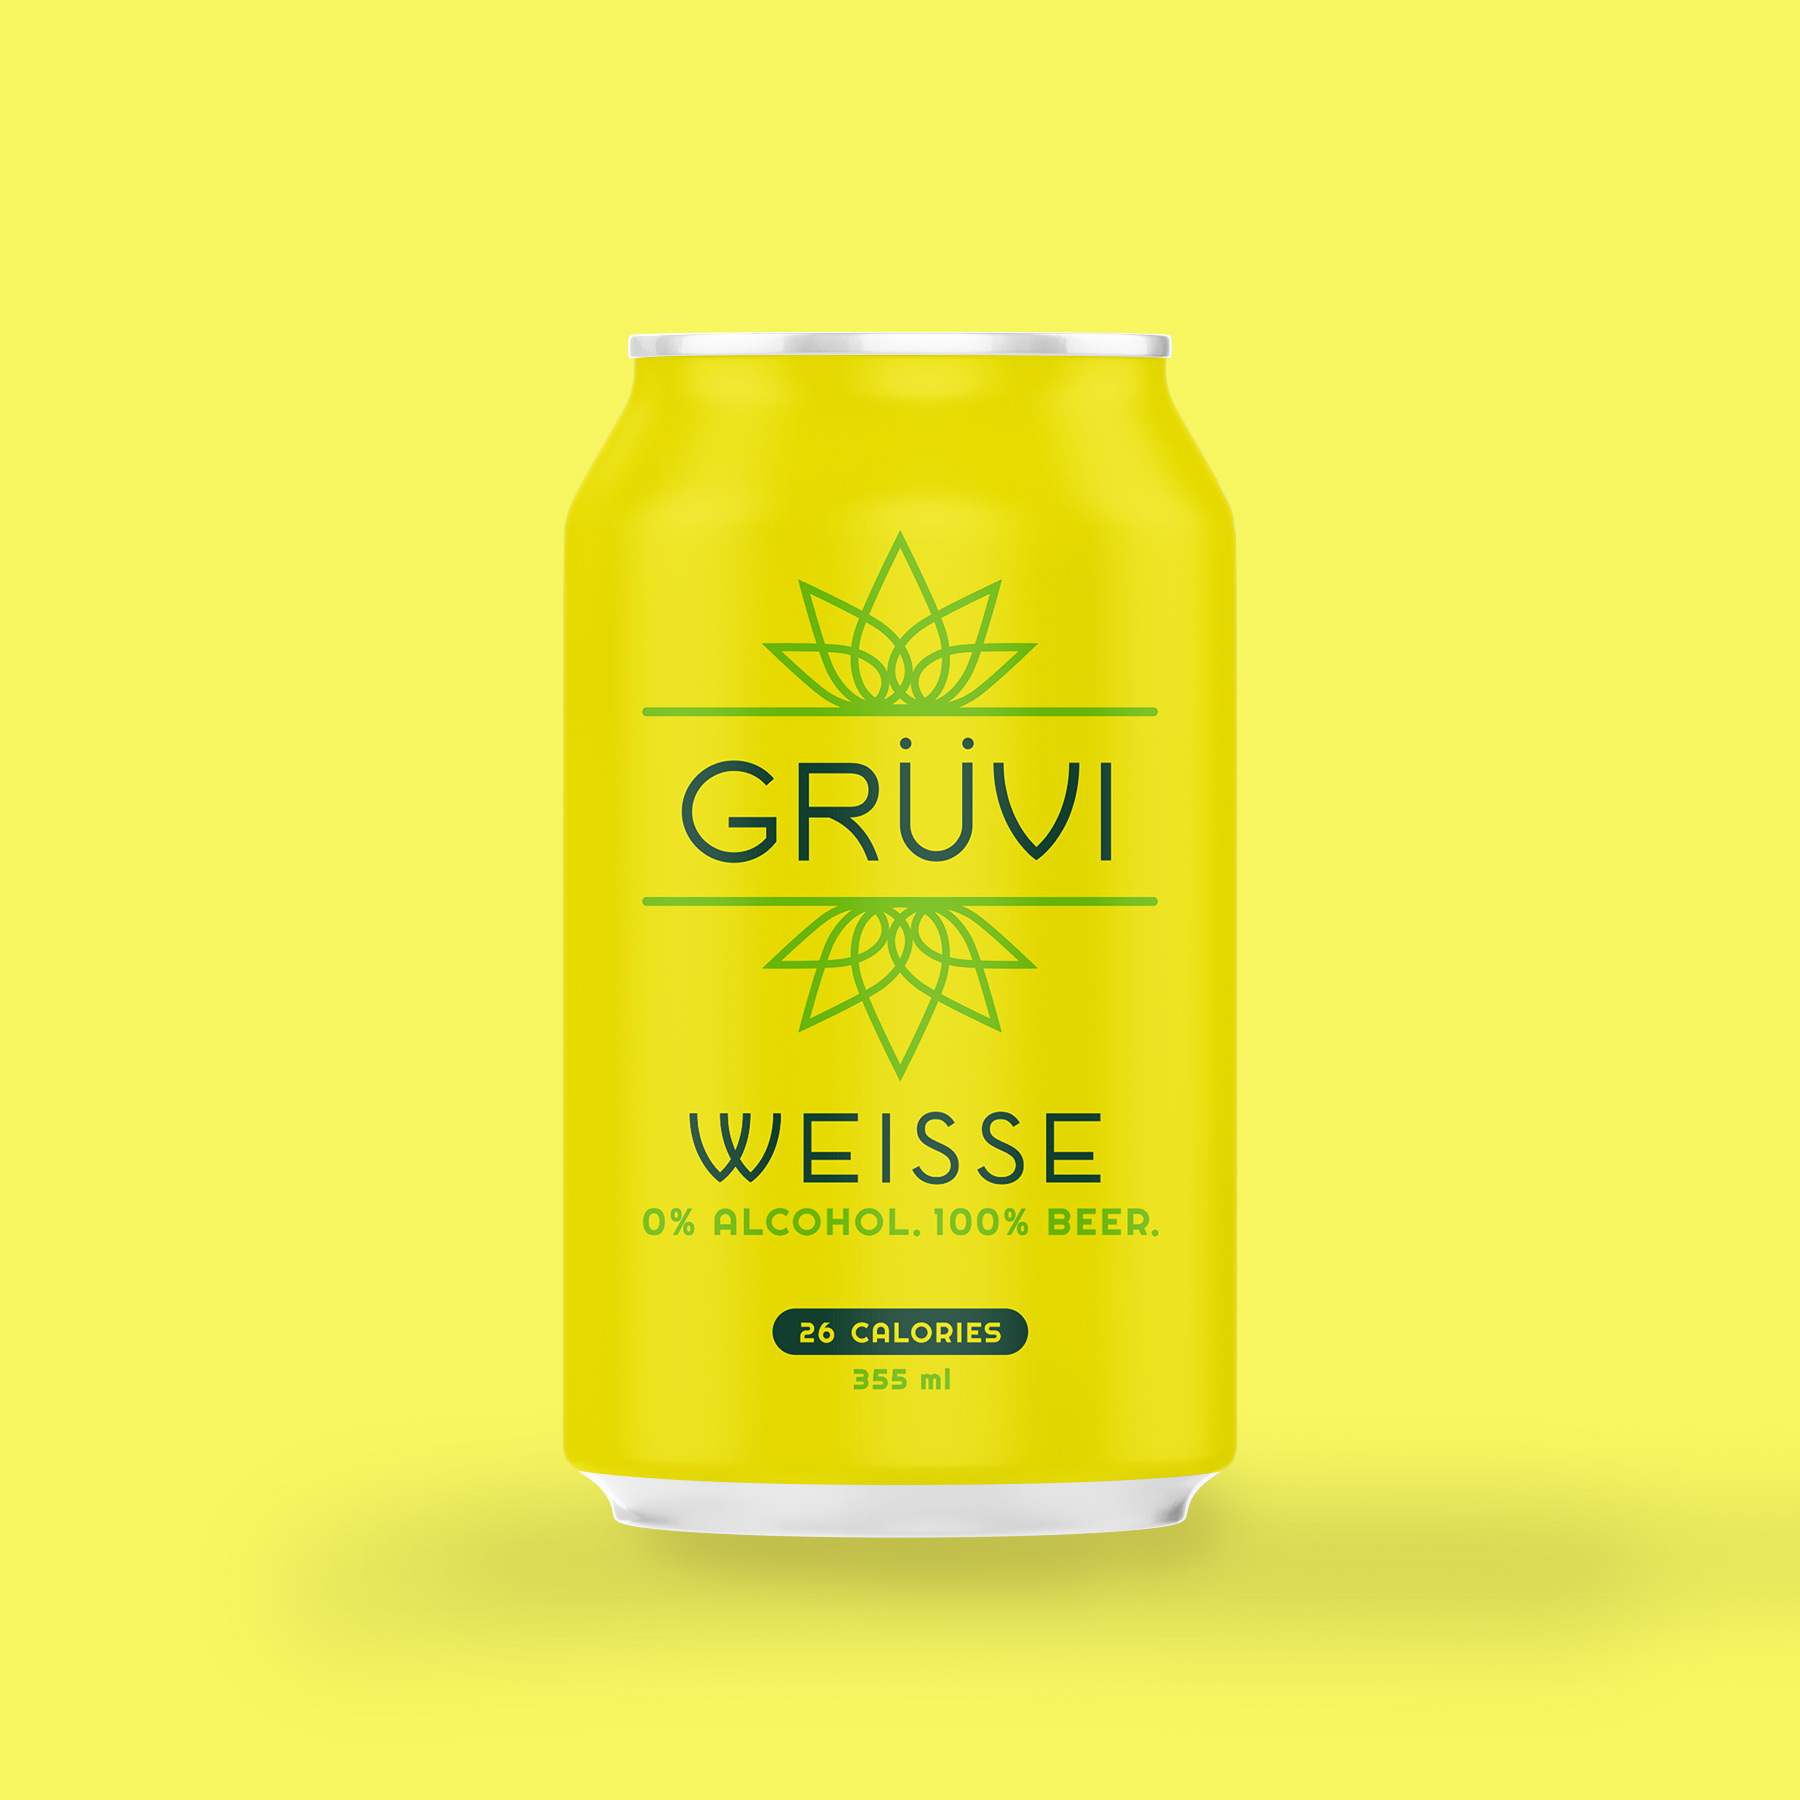 Gruvi Weisse   A truly refreshing citrus beer, carefully brewed with fresh lemon peels that release limonene to help to elevate your mood and energy. Gruvi Weisse is aromatic, light and drinkable. It will truly awaken your taste buds with its lemony start and wheaty finish